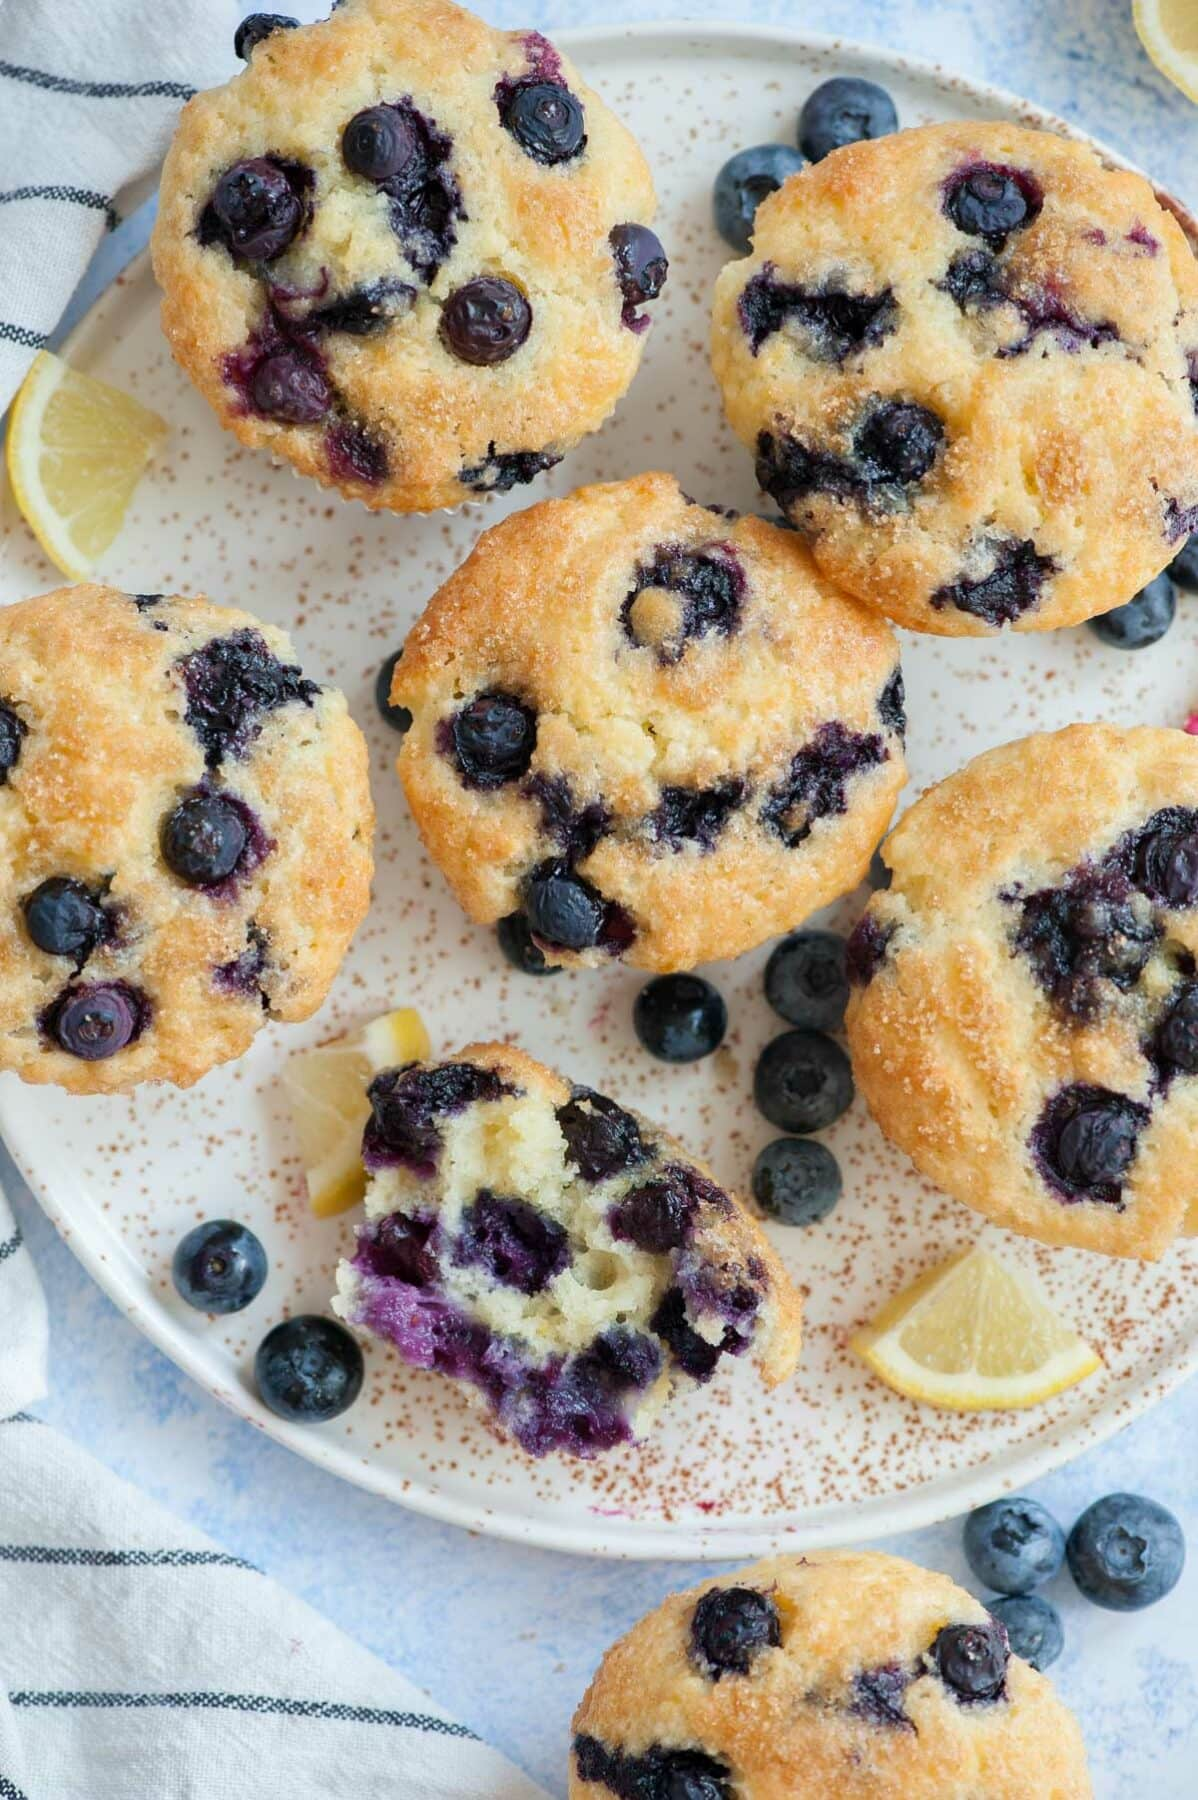 Overhead picture of blueberry yogurt muffins with one muffin cut in half.